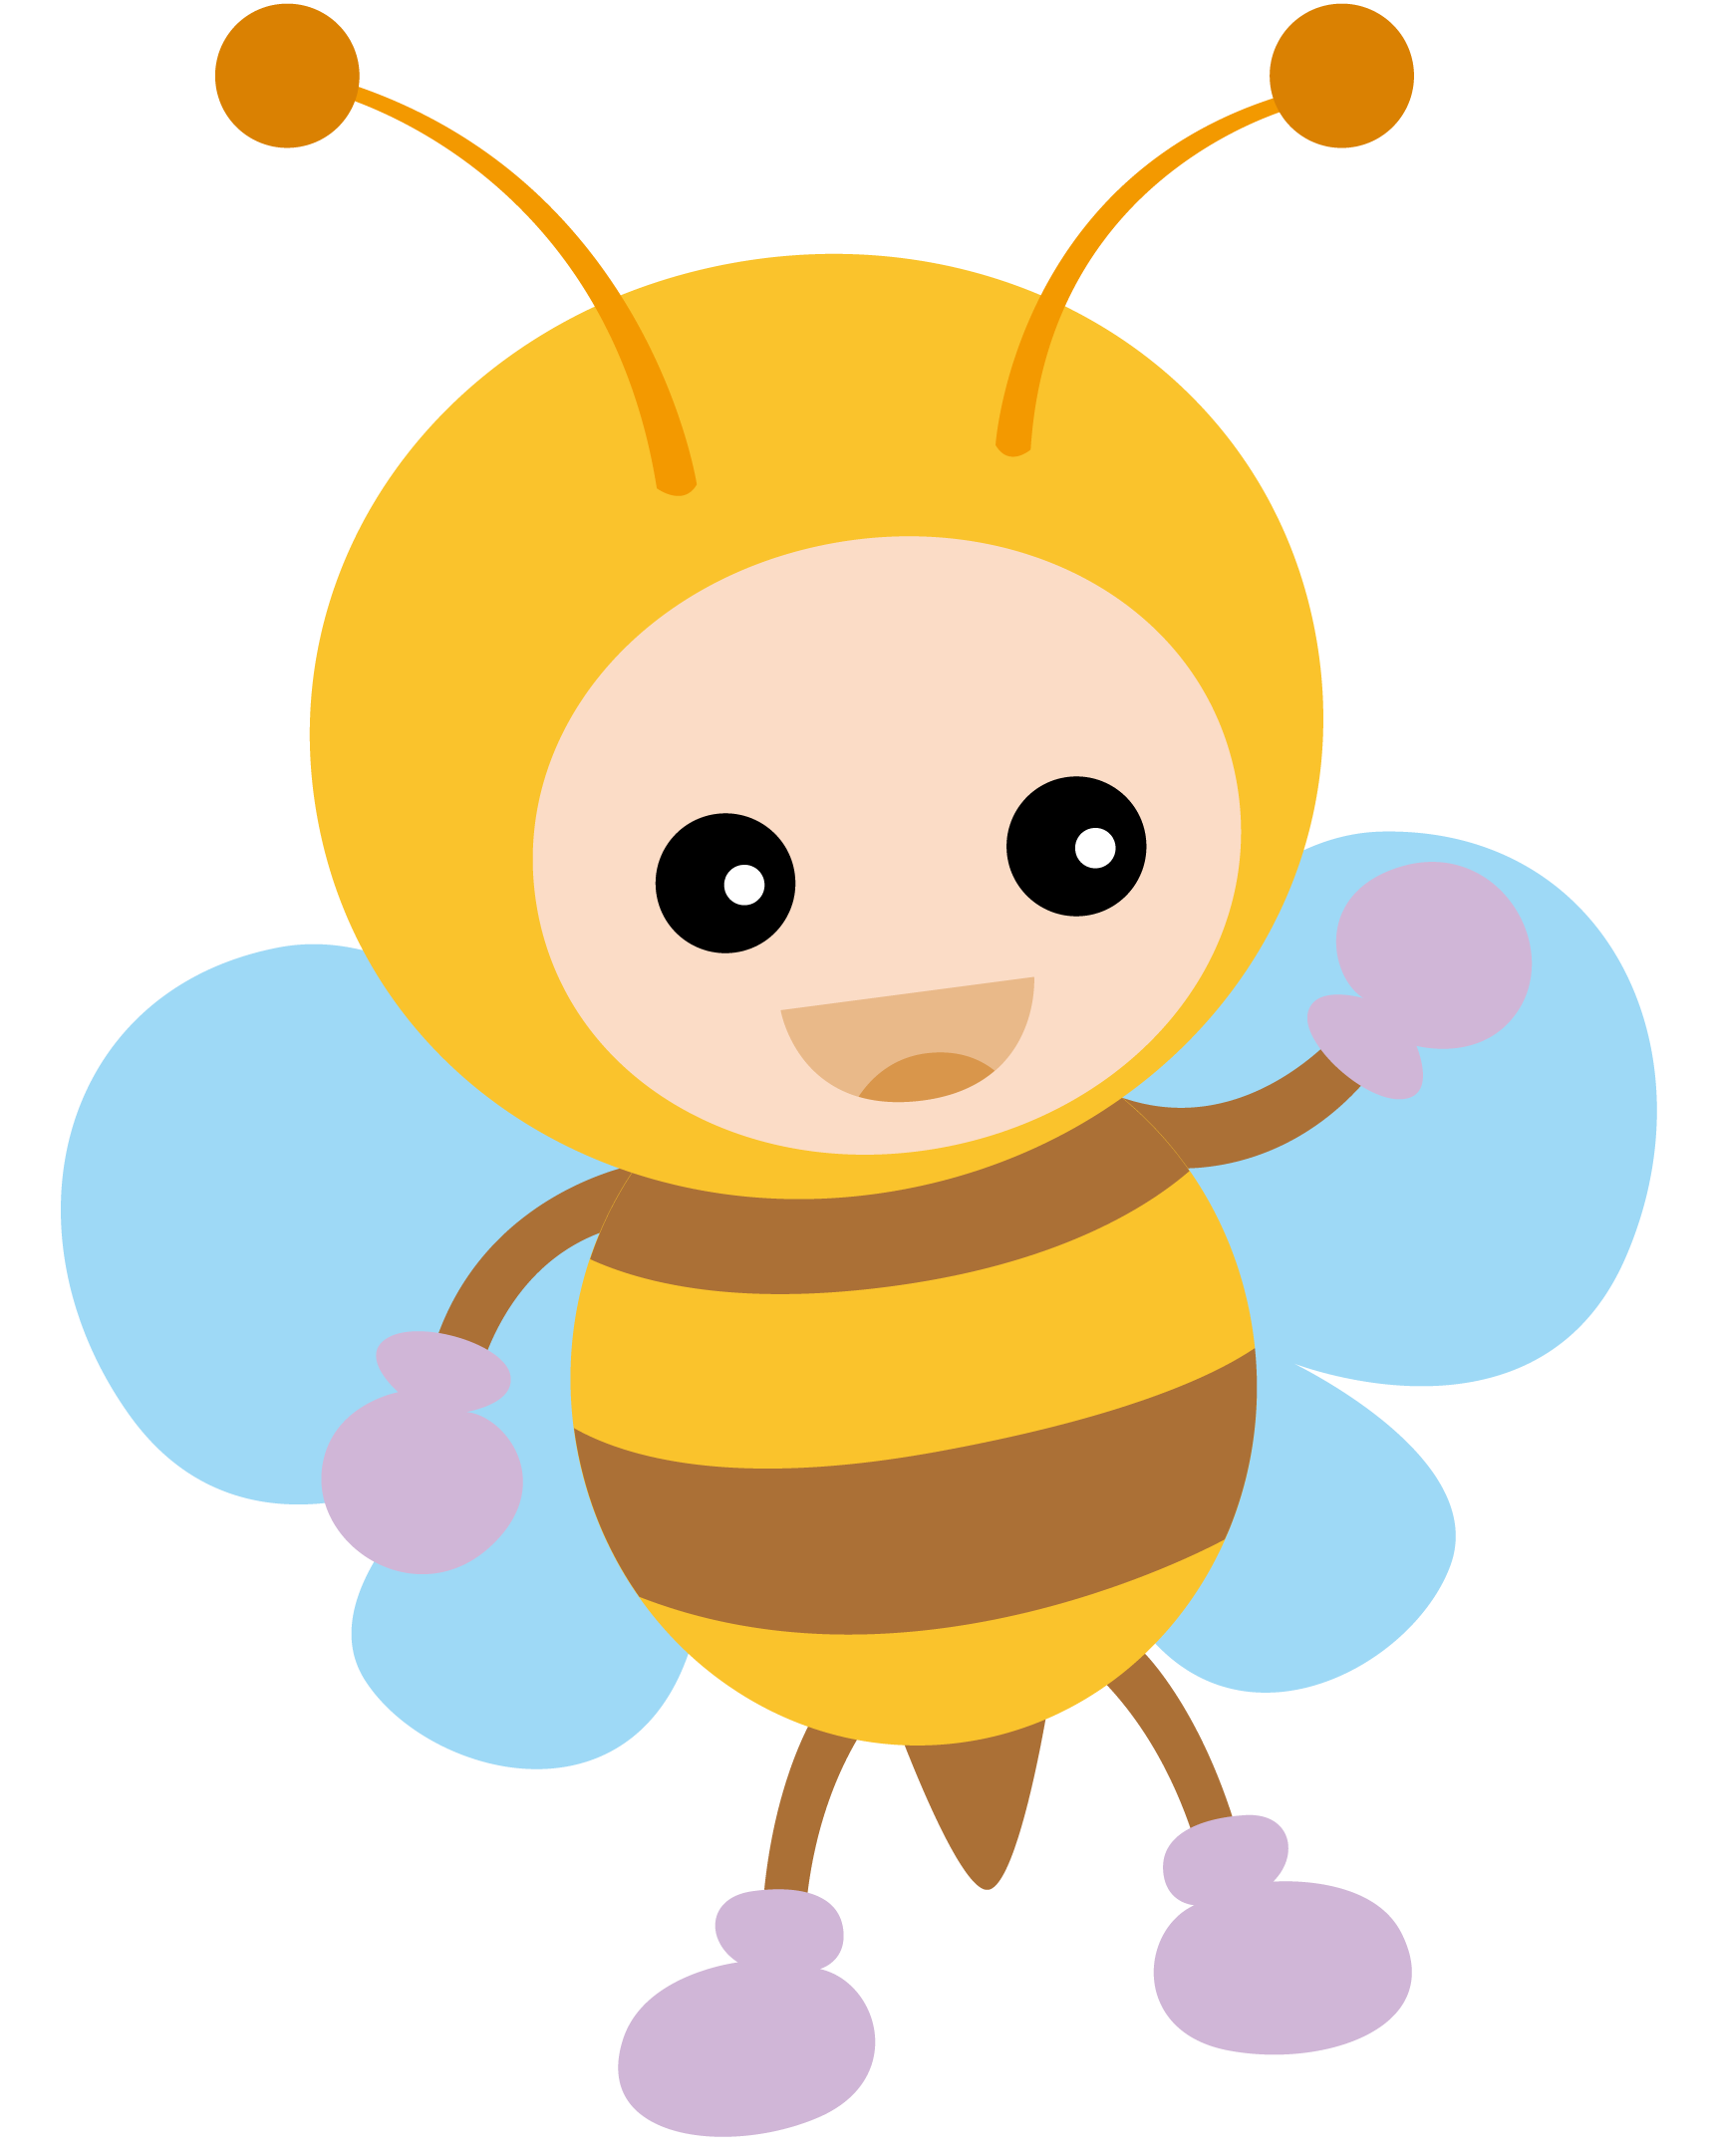 png royalty free download Pin by naenae nanny. Bumble clipart spring